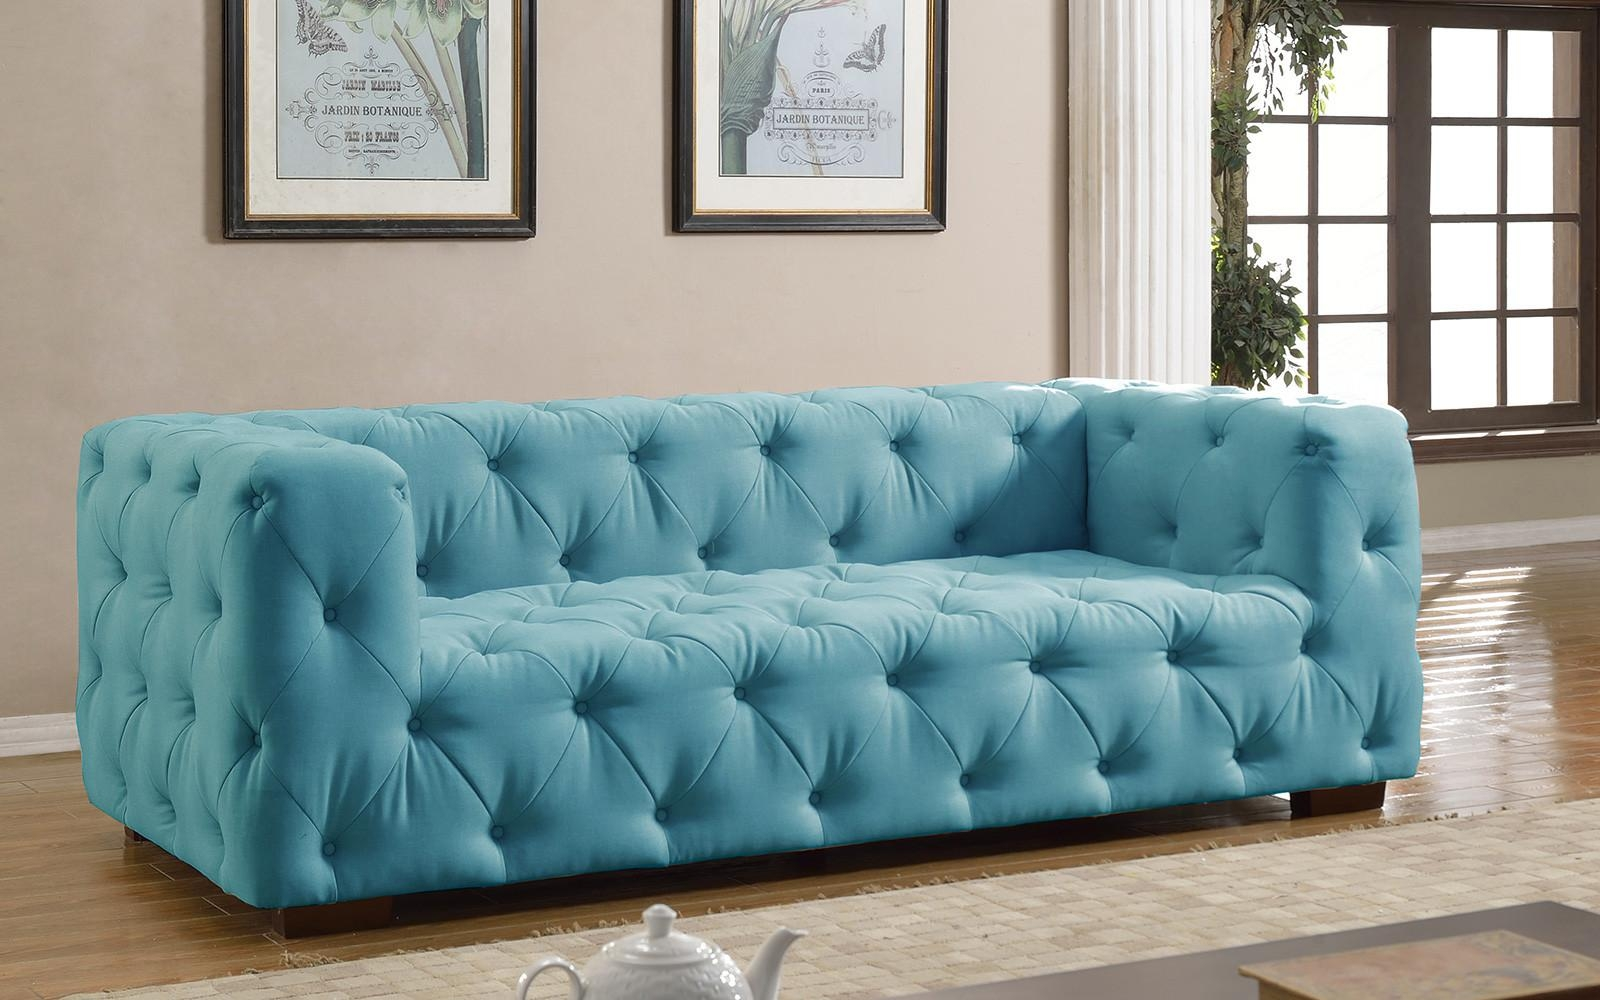 Luxurious Modern Large Tufted Linen Fabric Sofa – Walmart With Blue Tufted Sofas (Image 13 of 22)